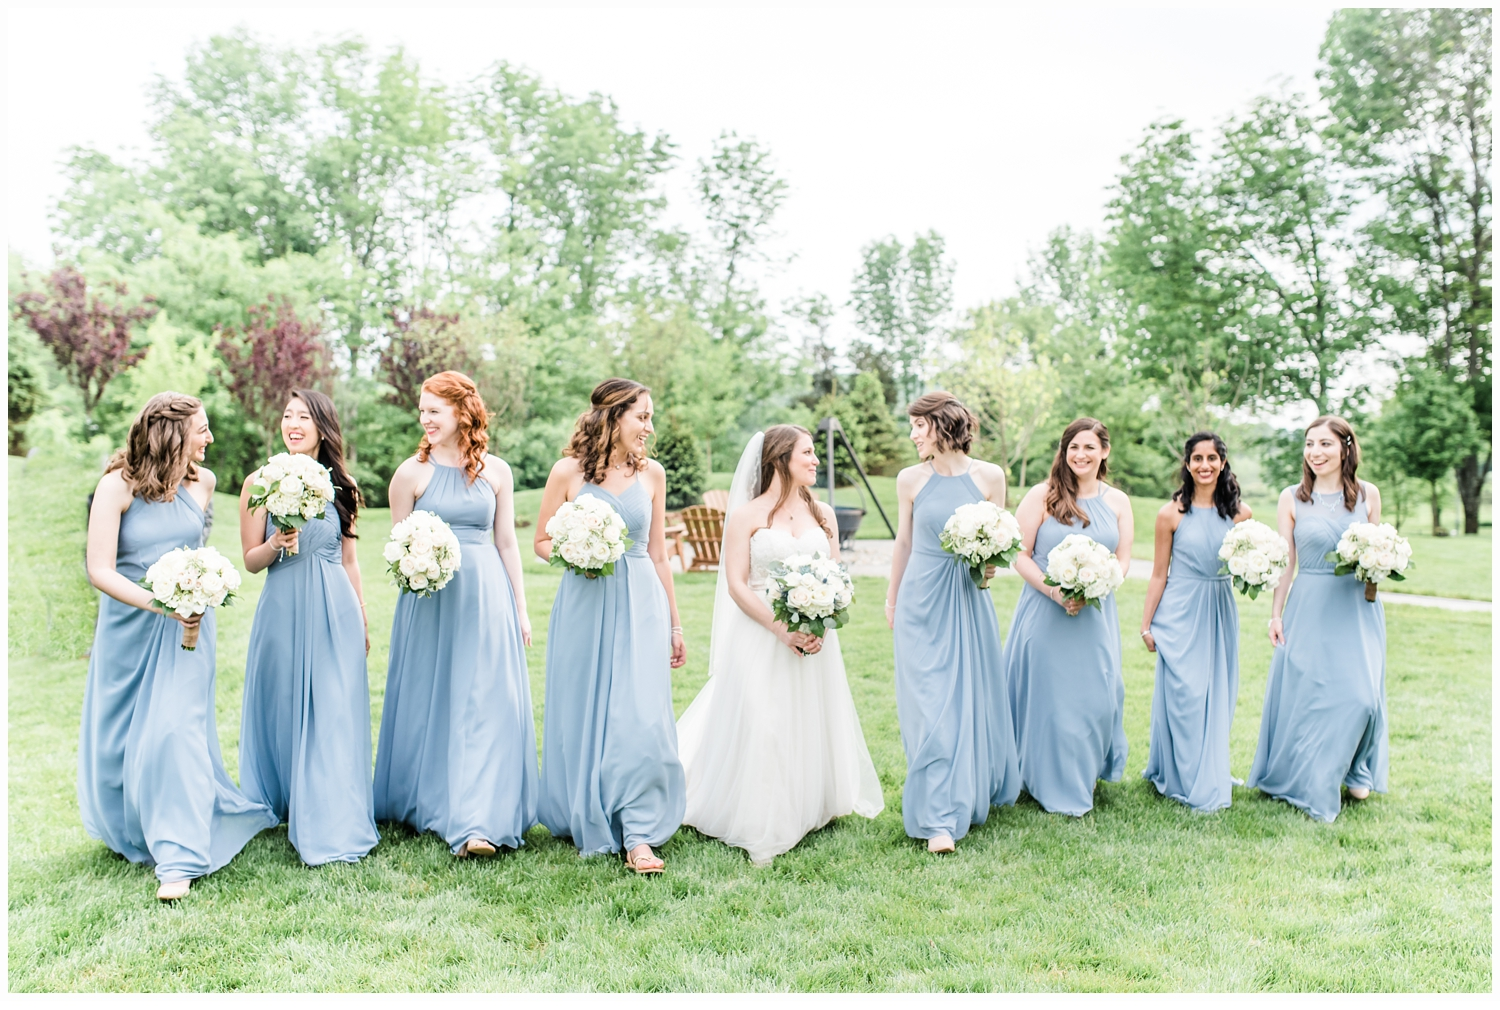 bride and bridesmaids walking in field